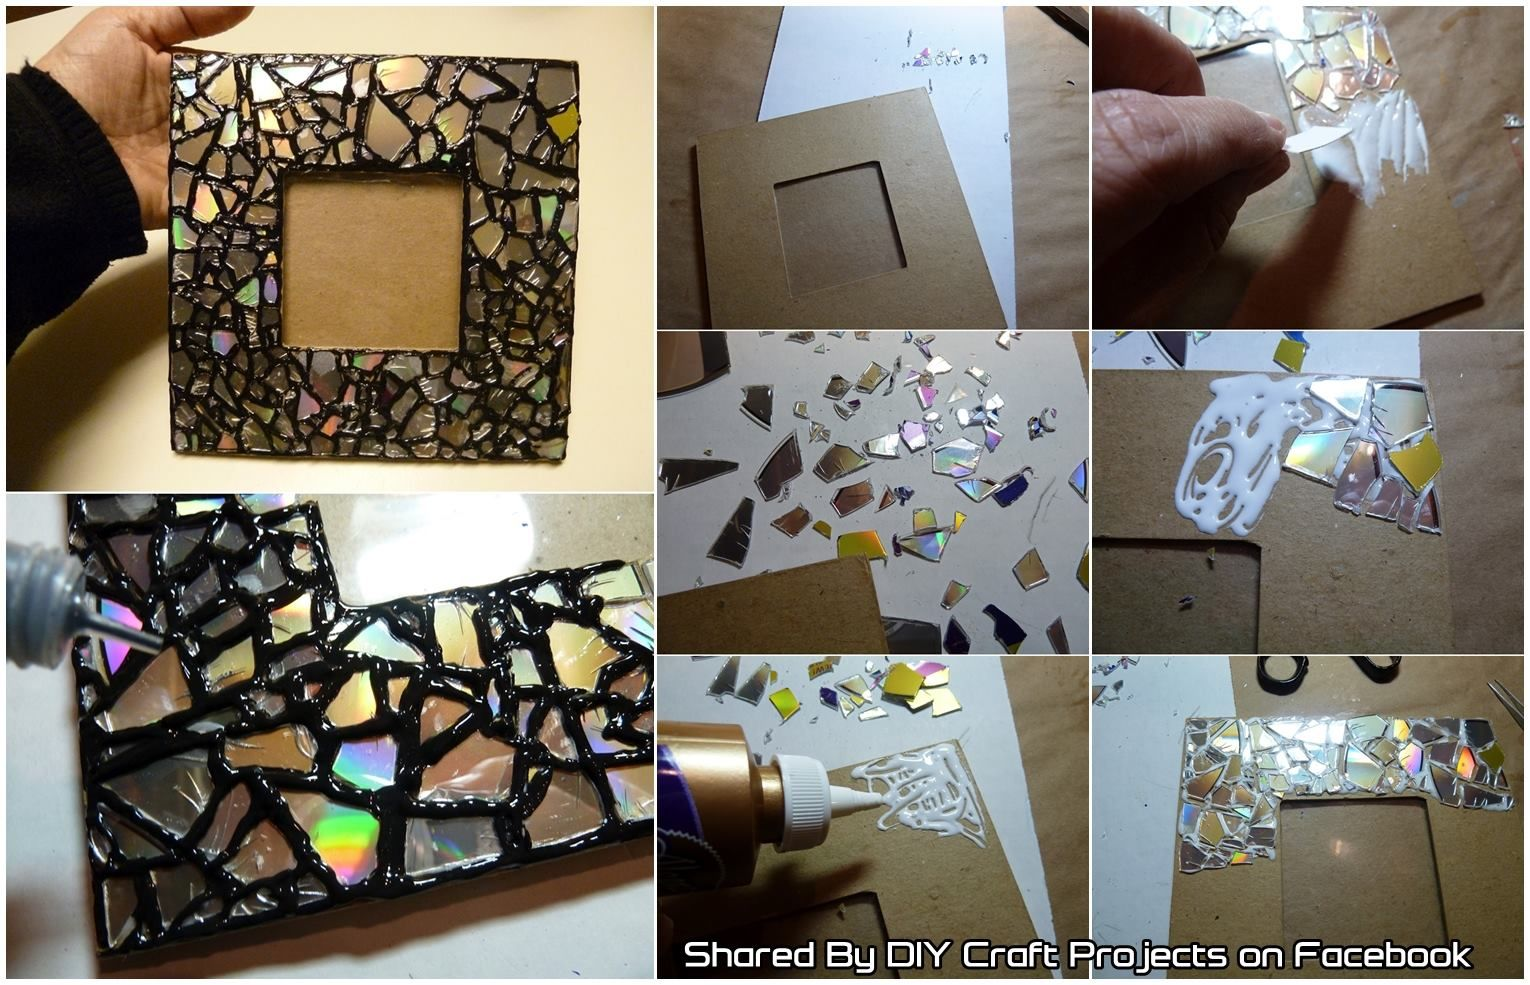 Diy recycled cd mosaic photo frame pictures photos and - Como hacer un marco de fotos a mano ...